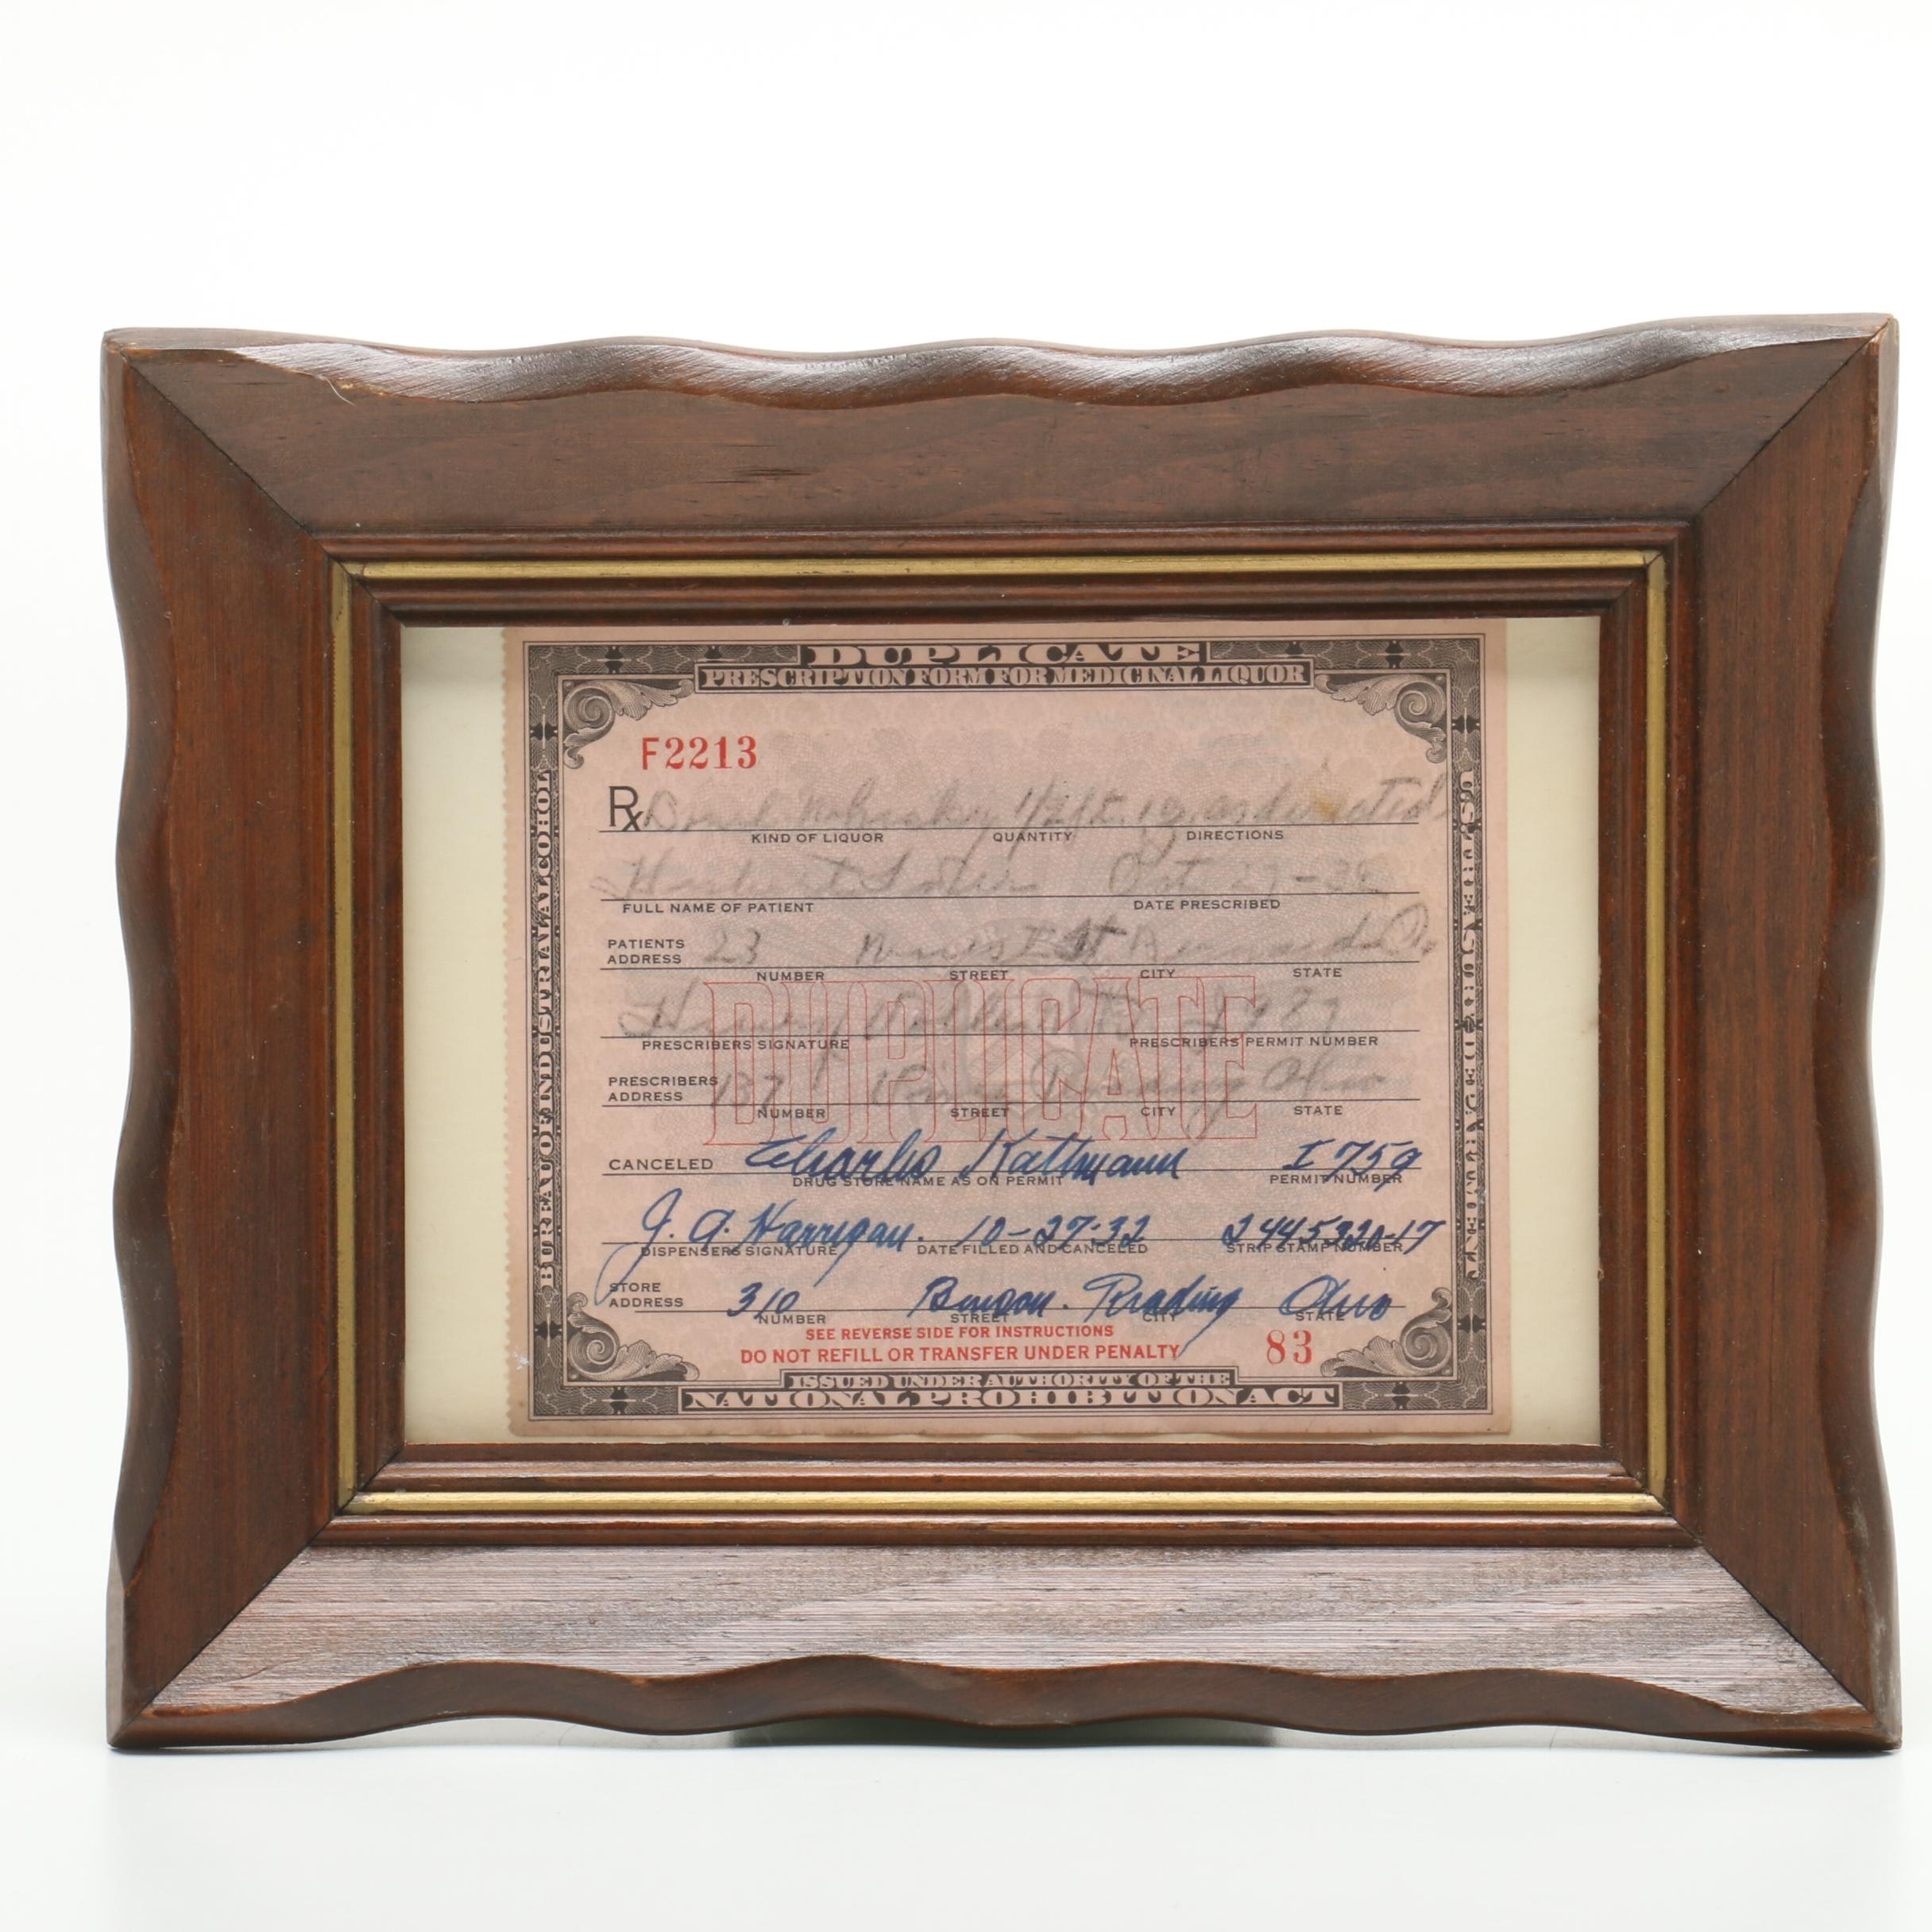 Duplicate 1932 Prohibition Era Whiskey Prescription from Cincinnati Area